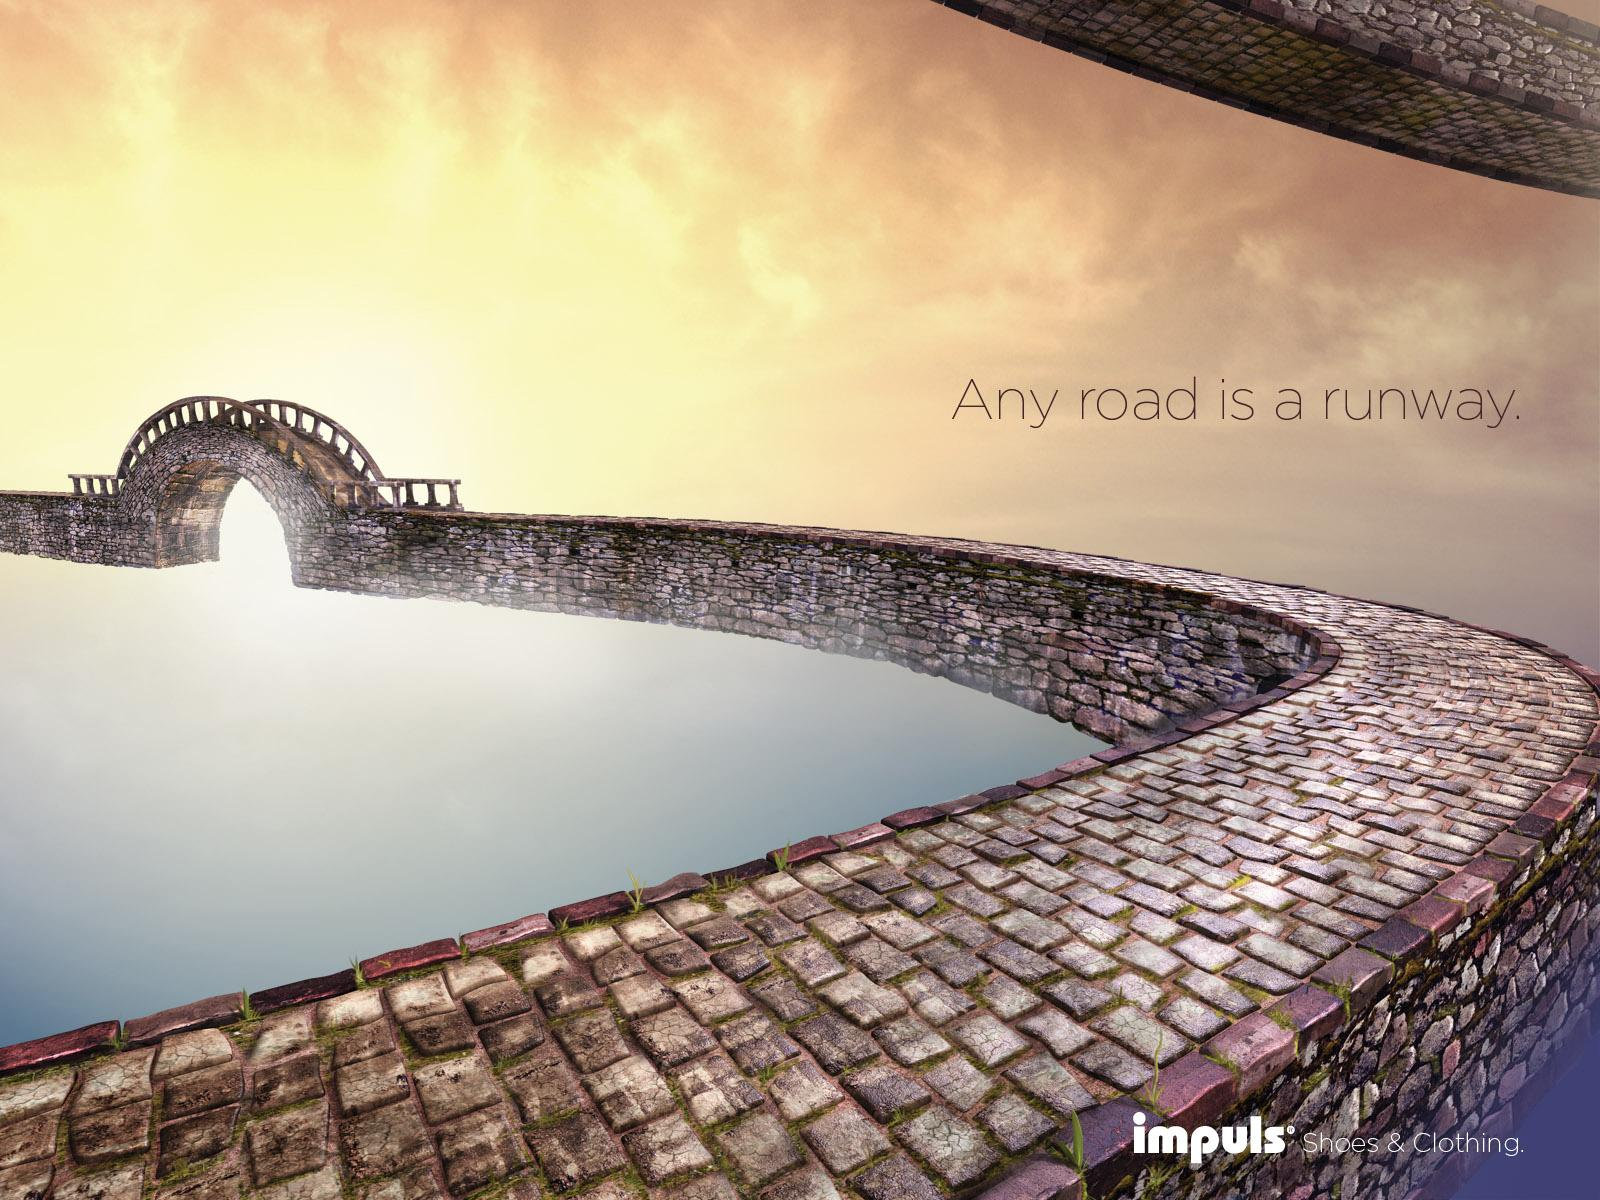 Impuls Print Ad -  Any Road is a Runway, Bridge